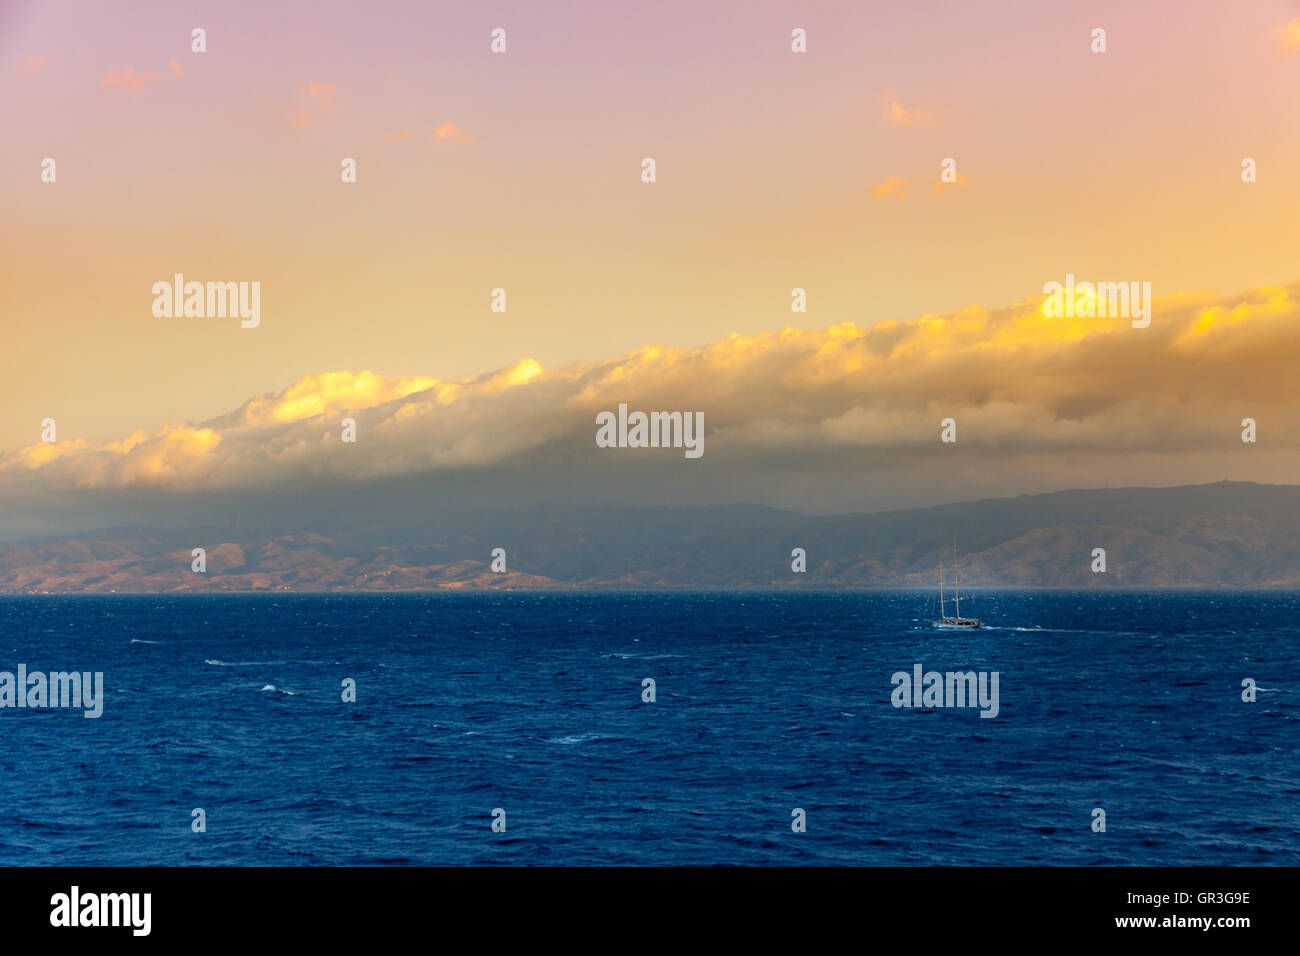 A sailing ship is passing near Hydra greek island with Peloponnese in background. - Stock Image